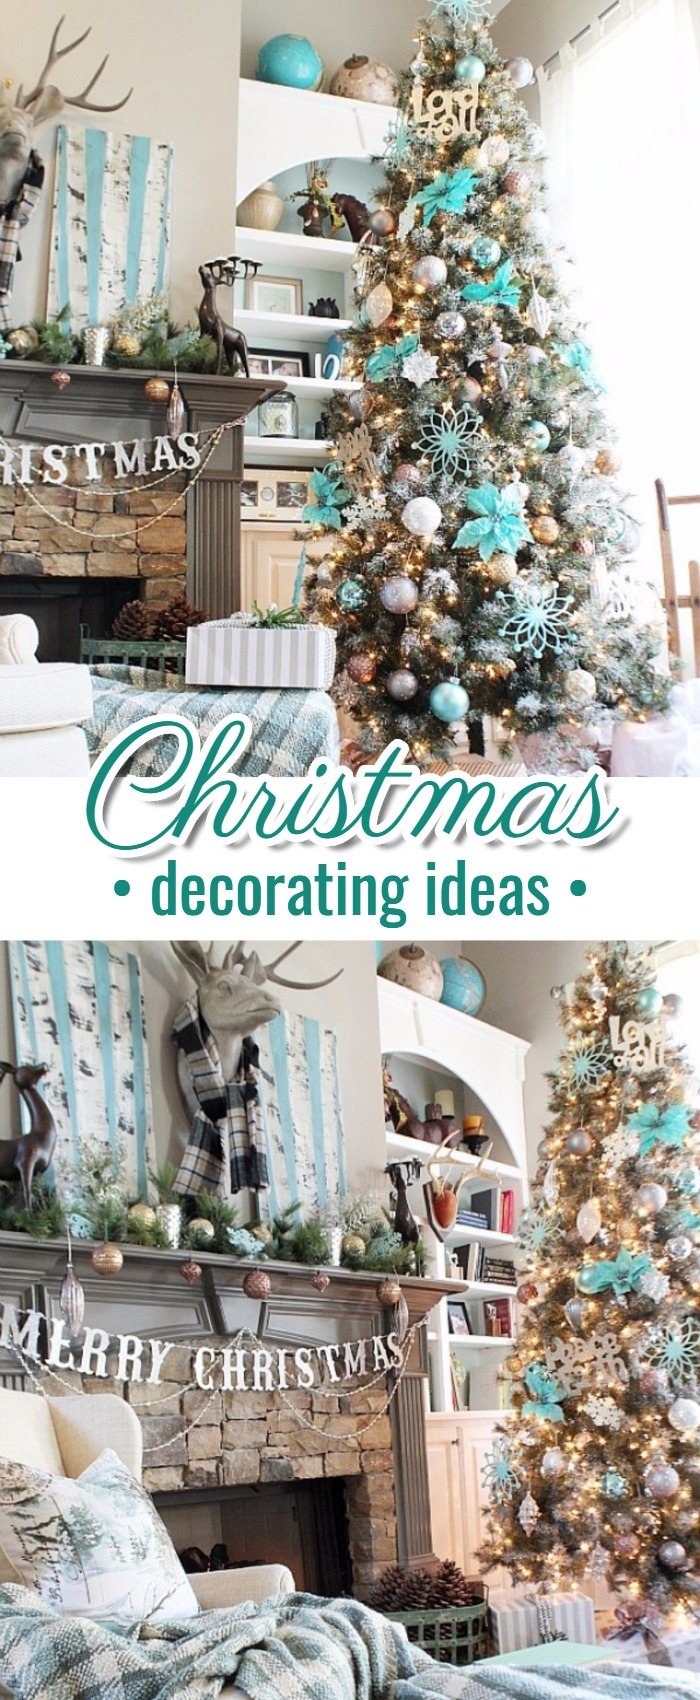 Gorgeous Christmas Decorating Ideas - love them all!